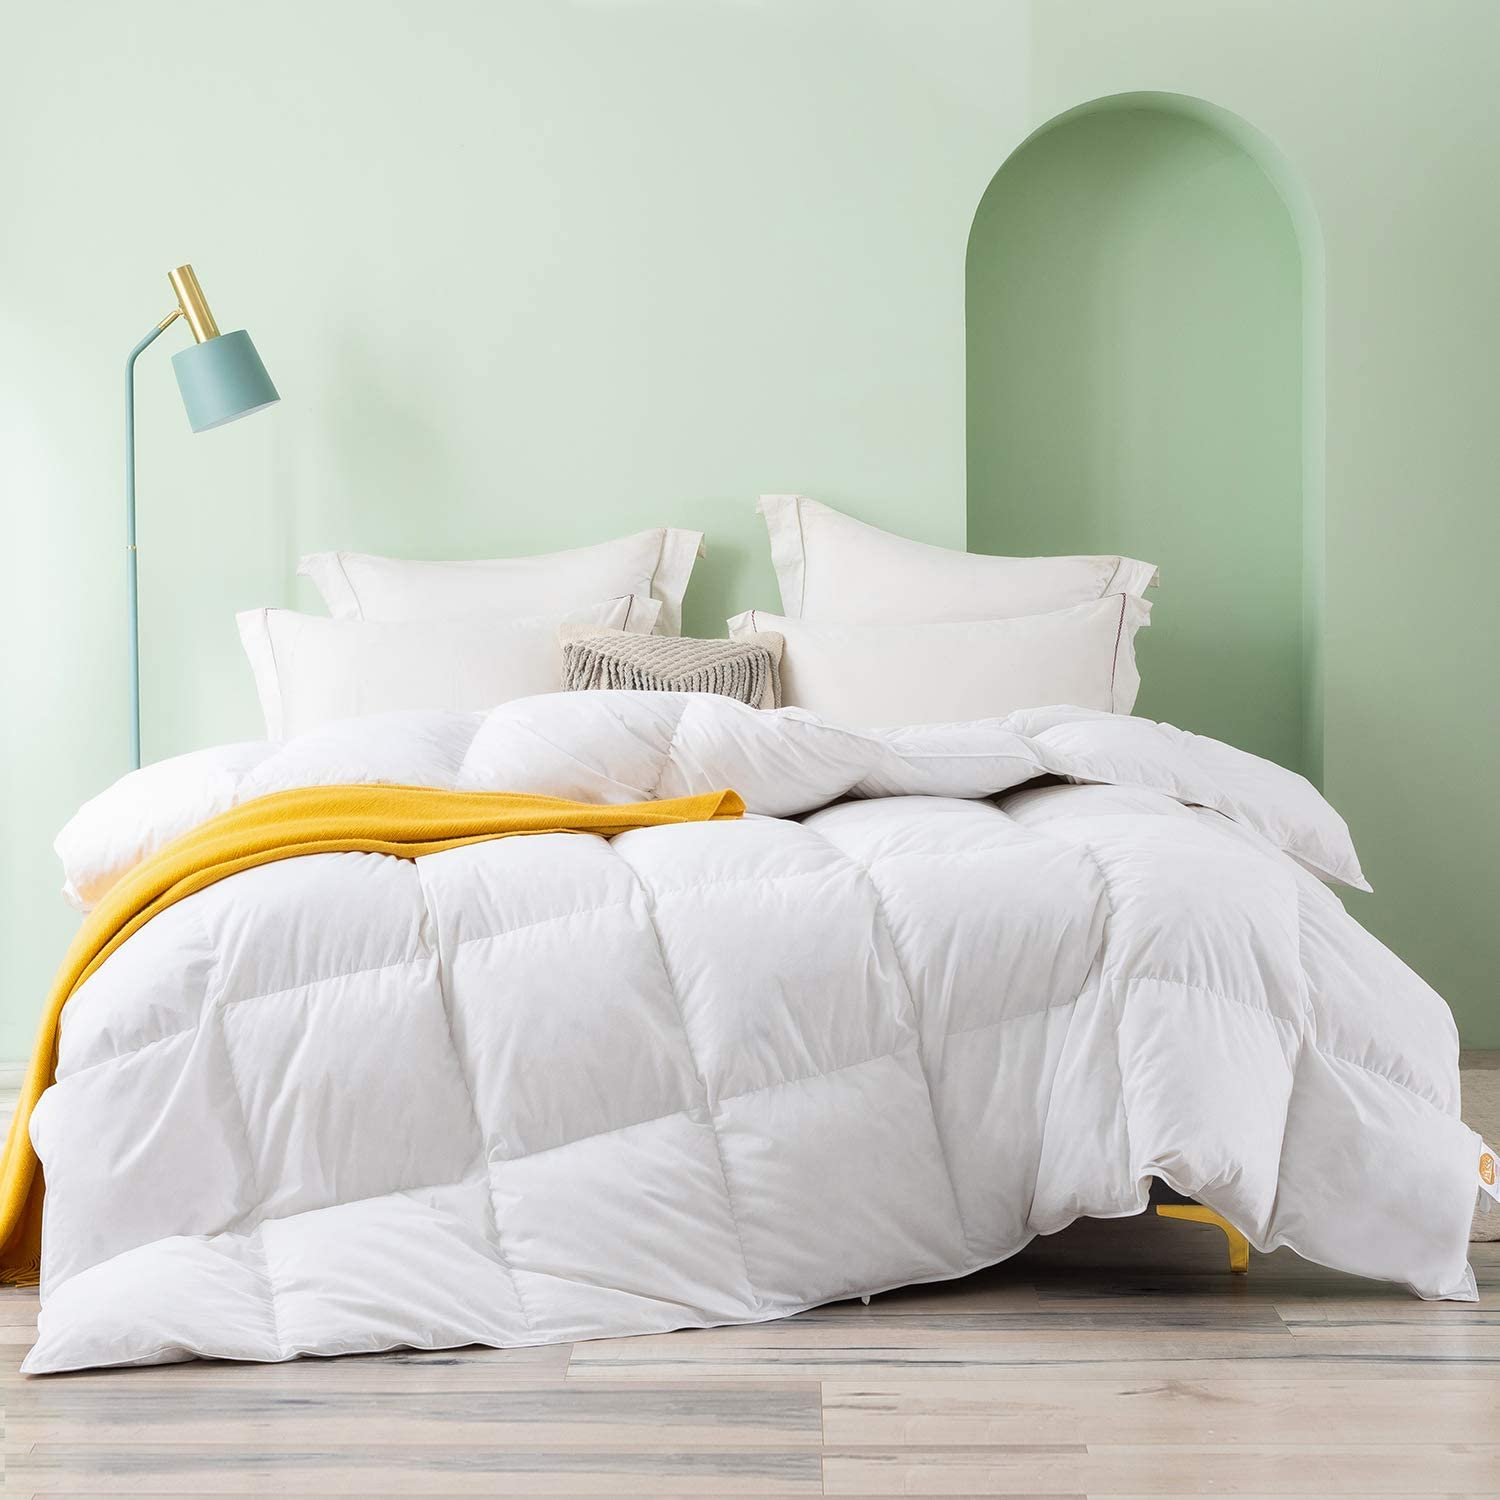 Topllen All Season Down Comforter - 100% Cotton Downproof Hypoallergenic Fabric - Quilted Fluffy Comforters with Corner Tabs ( White )